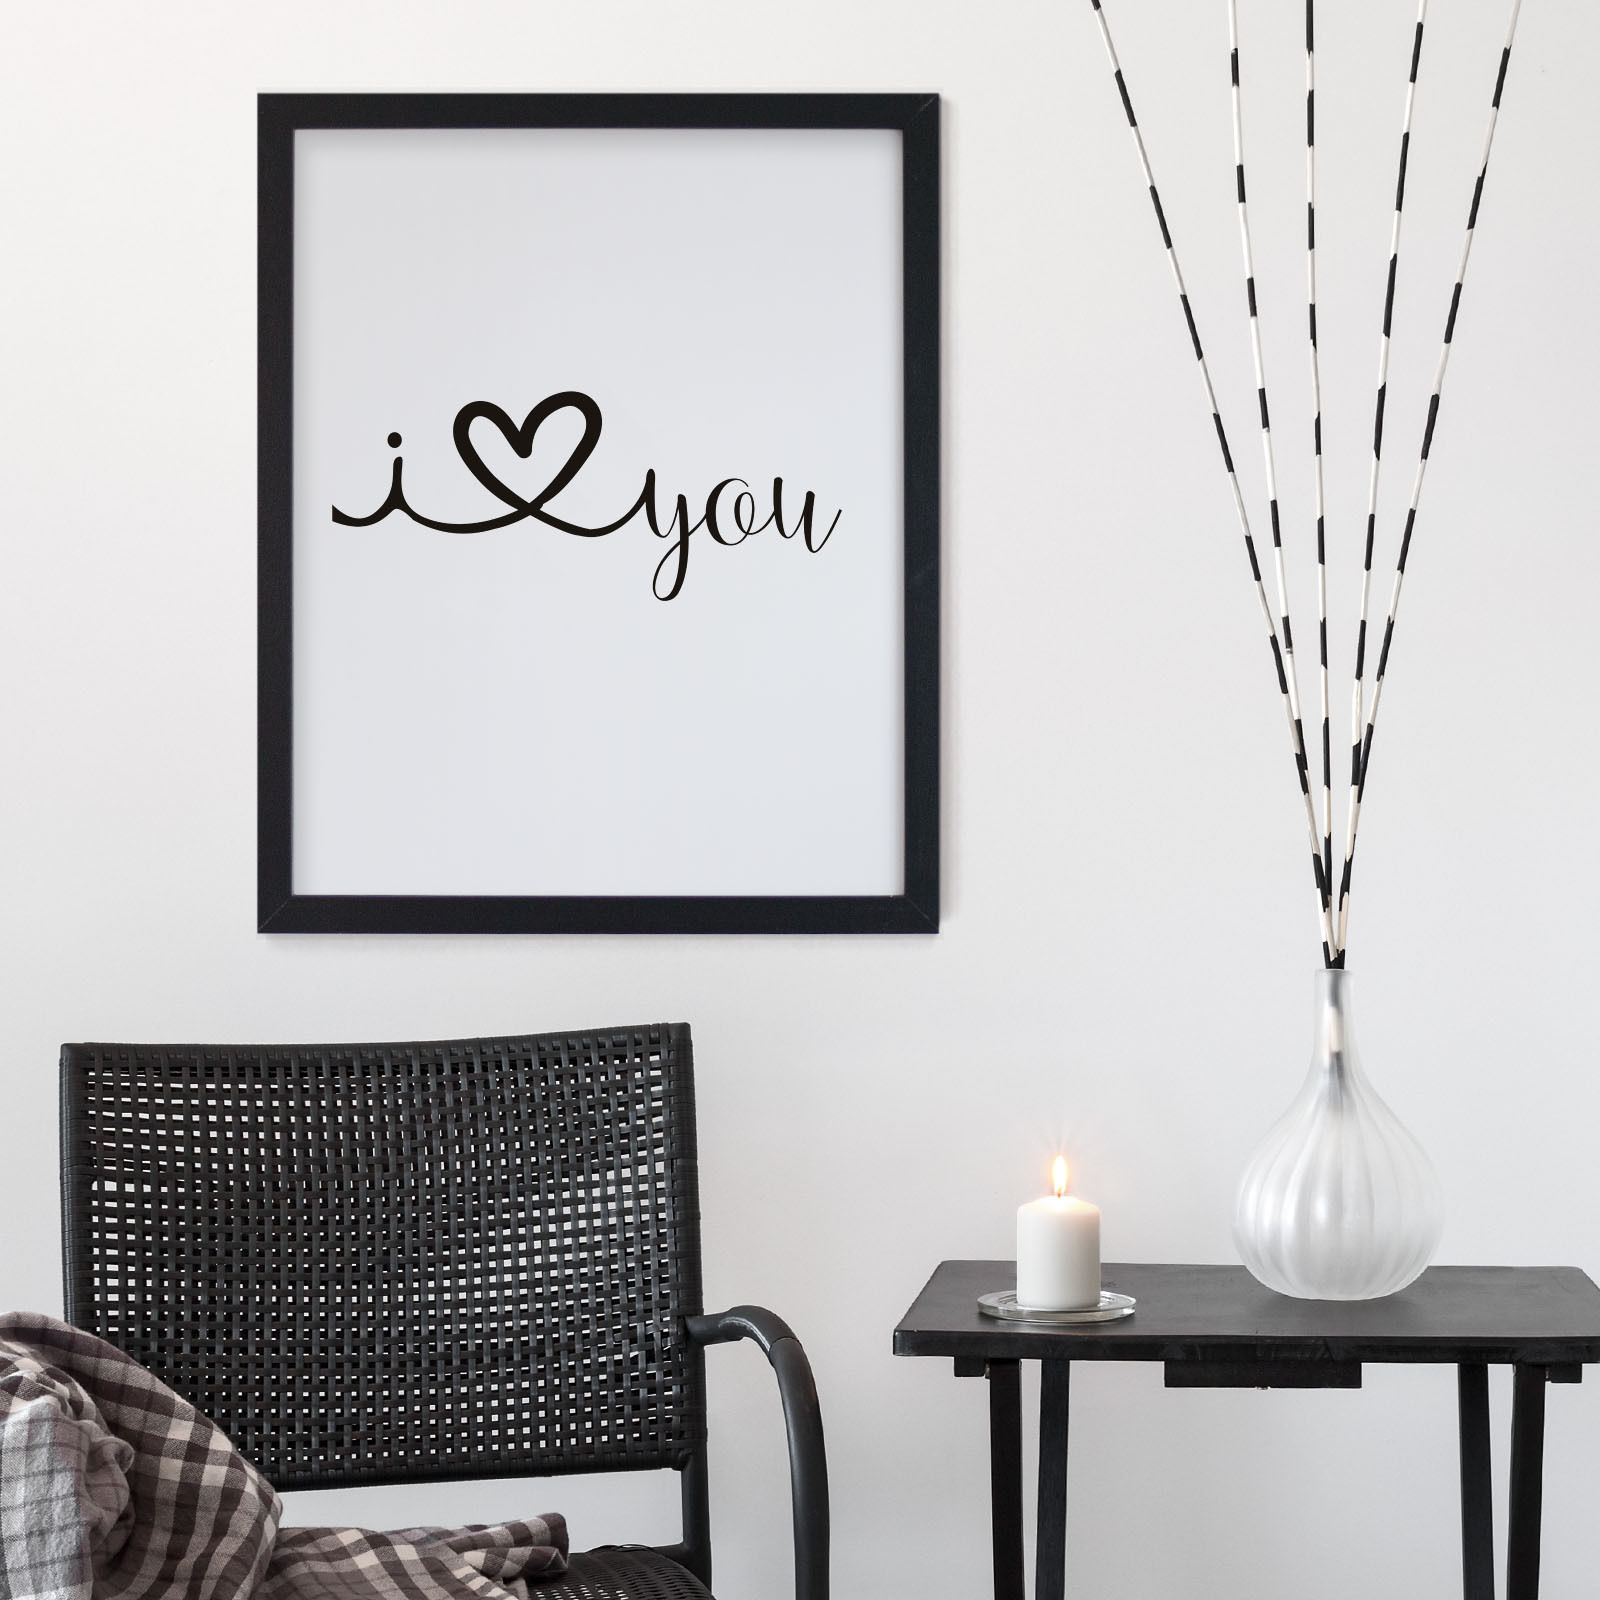 bild poster bilder mit spr chen rahmen i love you ich liebe dich schwarz ebay. Black Bedroom Furniture Sets. Home Design Ideas